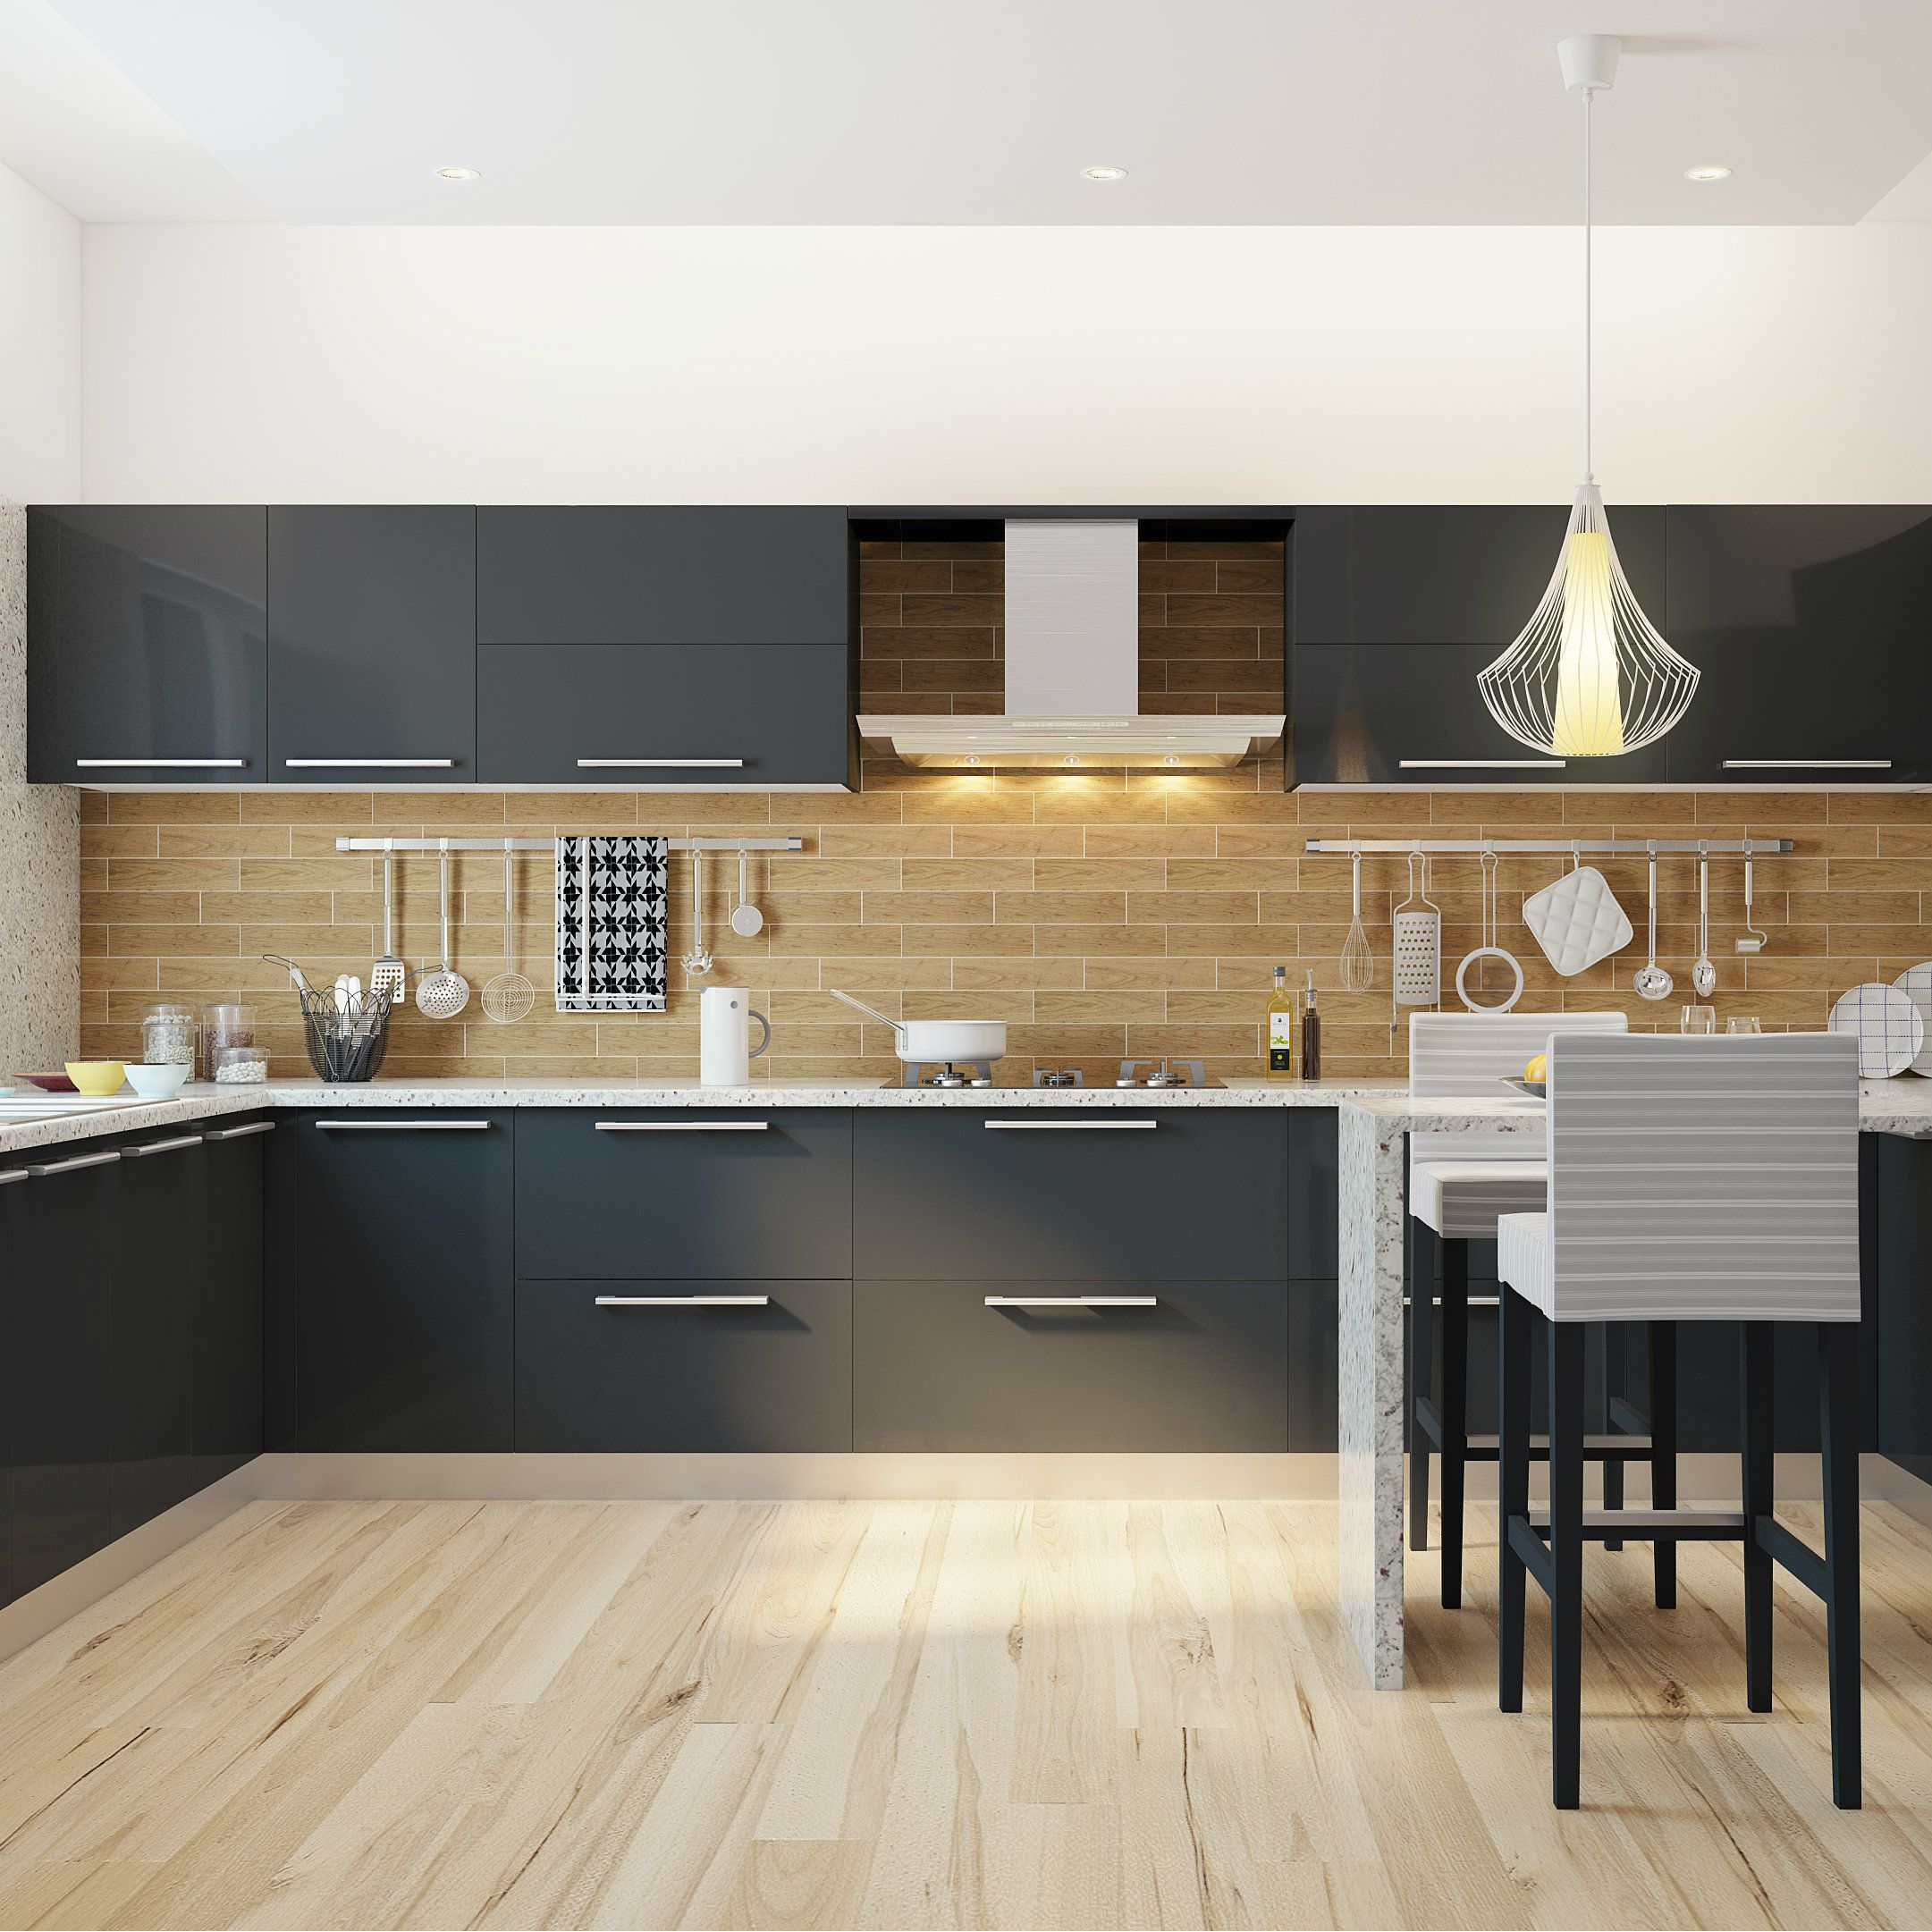 Modular Kitchen Magnon India: Sprawling Modular Kitchen With A Breakfast Counter. Perfect For Modern Indian Homes.